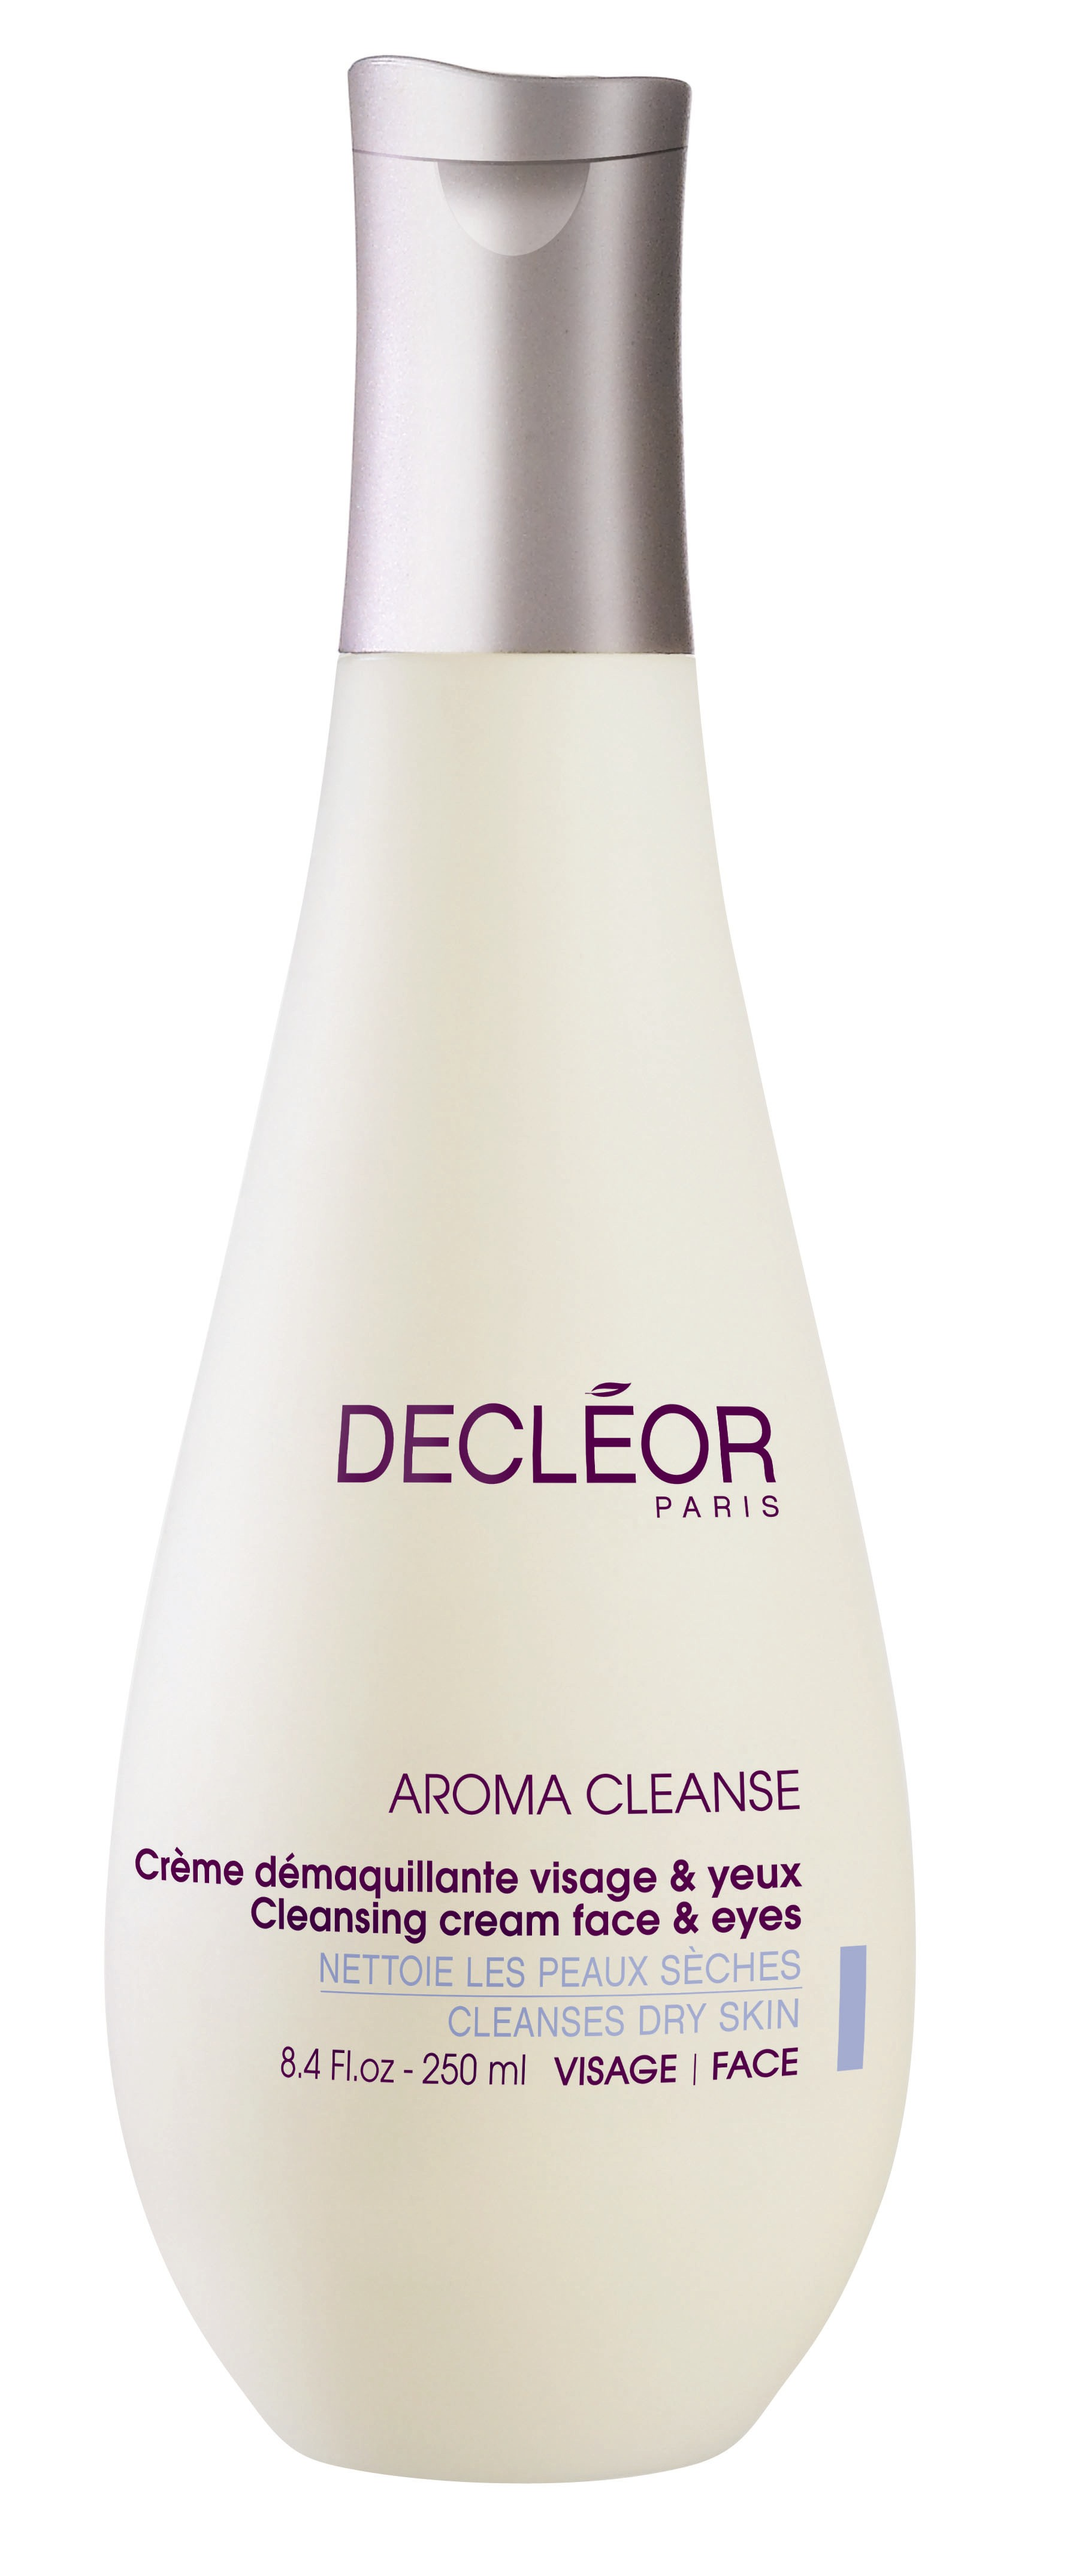 Decleor 250ml Aroma Cleanse Cleansing Cream Face & Eyes